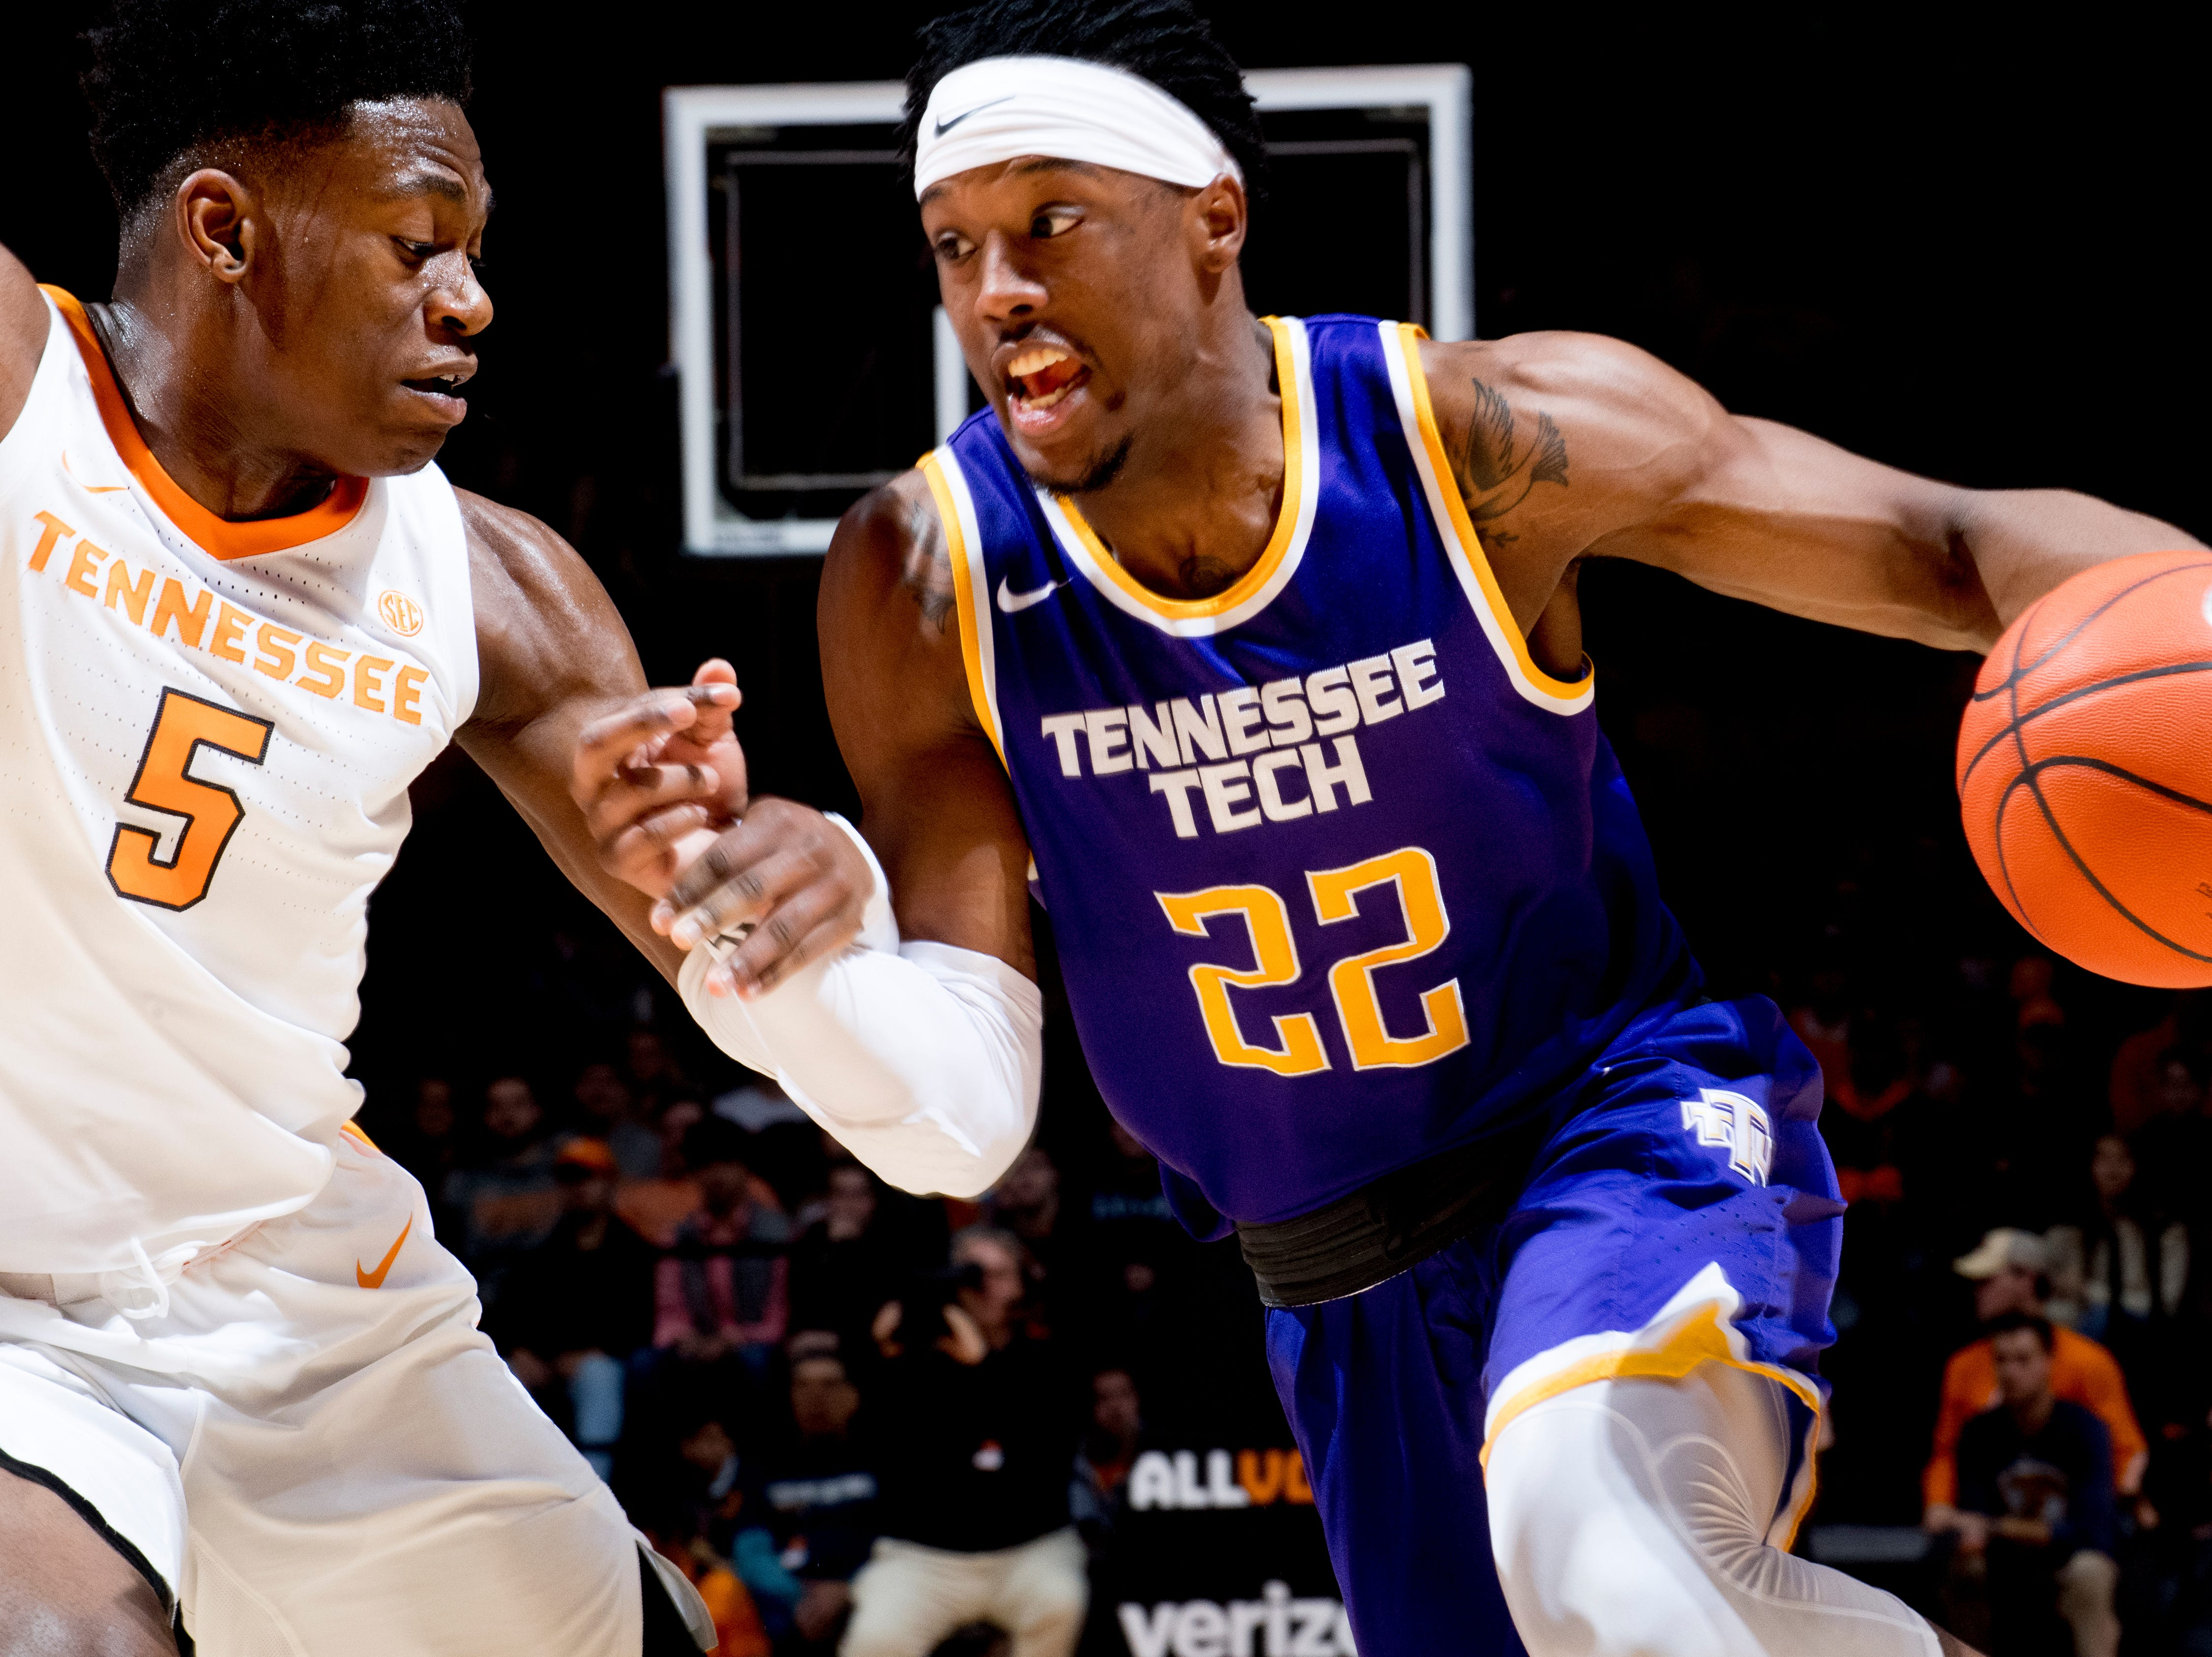 Tennessee Tech forward Courtney Alexander II (22) dribbles around Tennessee guard Admiral Schofield (5) during a game between Tennessee and Tennessee Tech at Thompson-Boling Arena in Knoxville, Tennessee on Saturday, December 29, 2018.